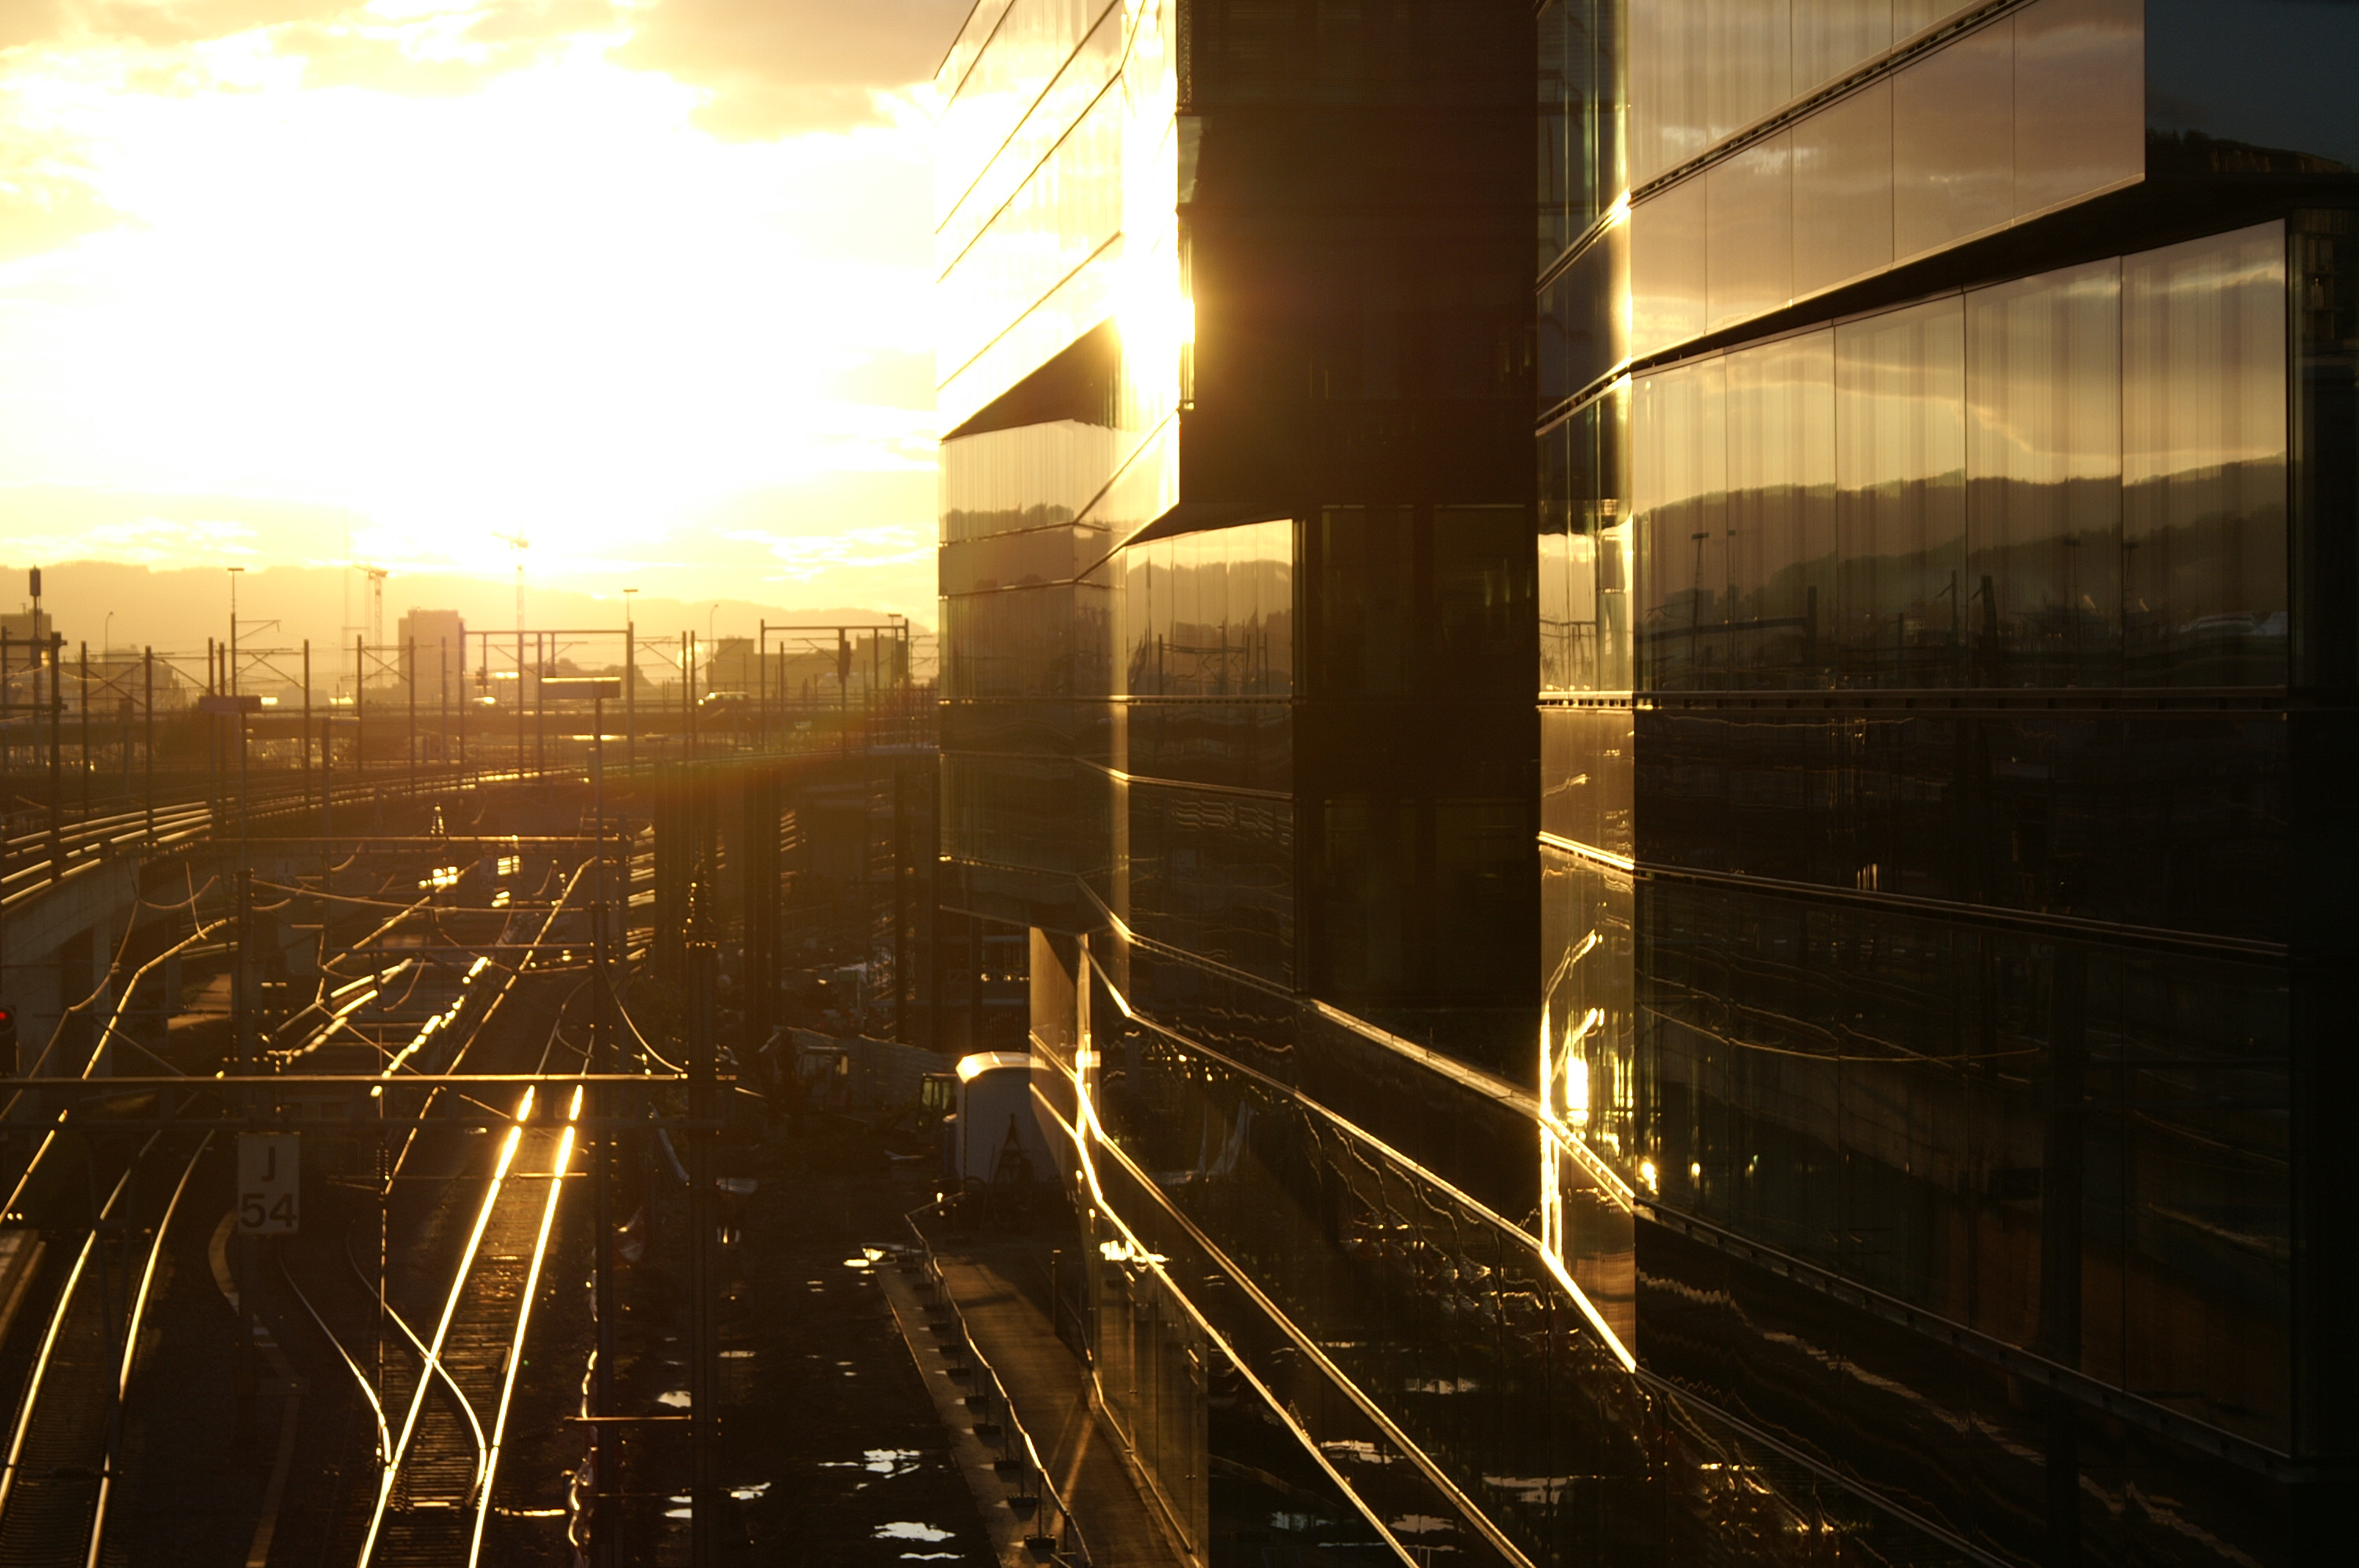 Ernst & Young Office Building next to Hardbruecke Train Station Tracks at Sunset